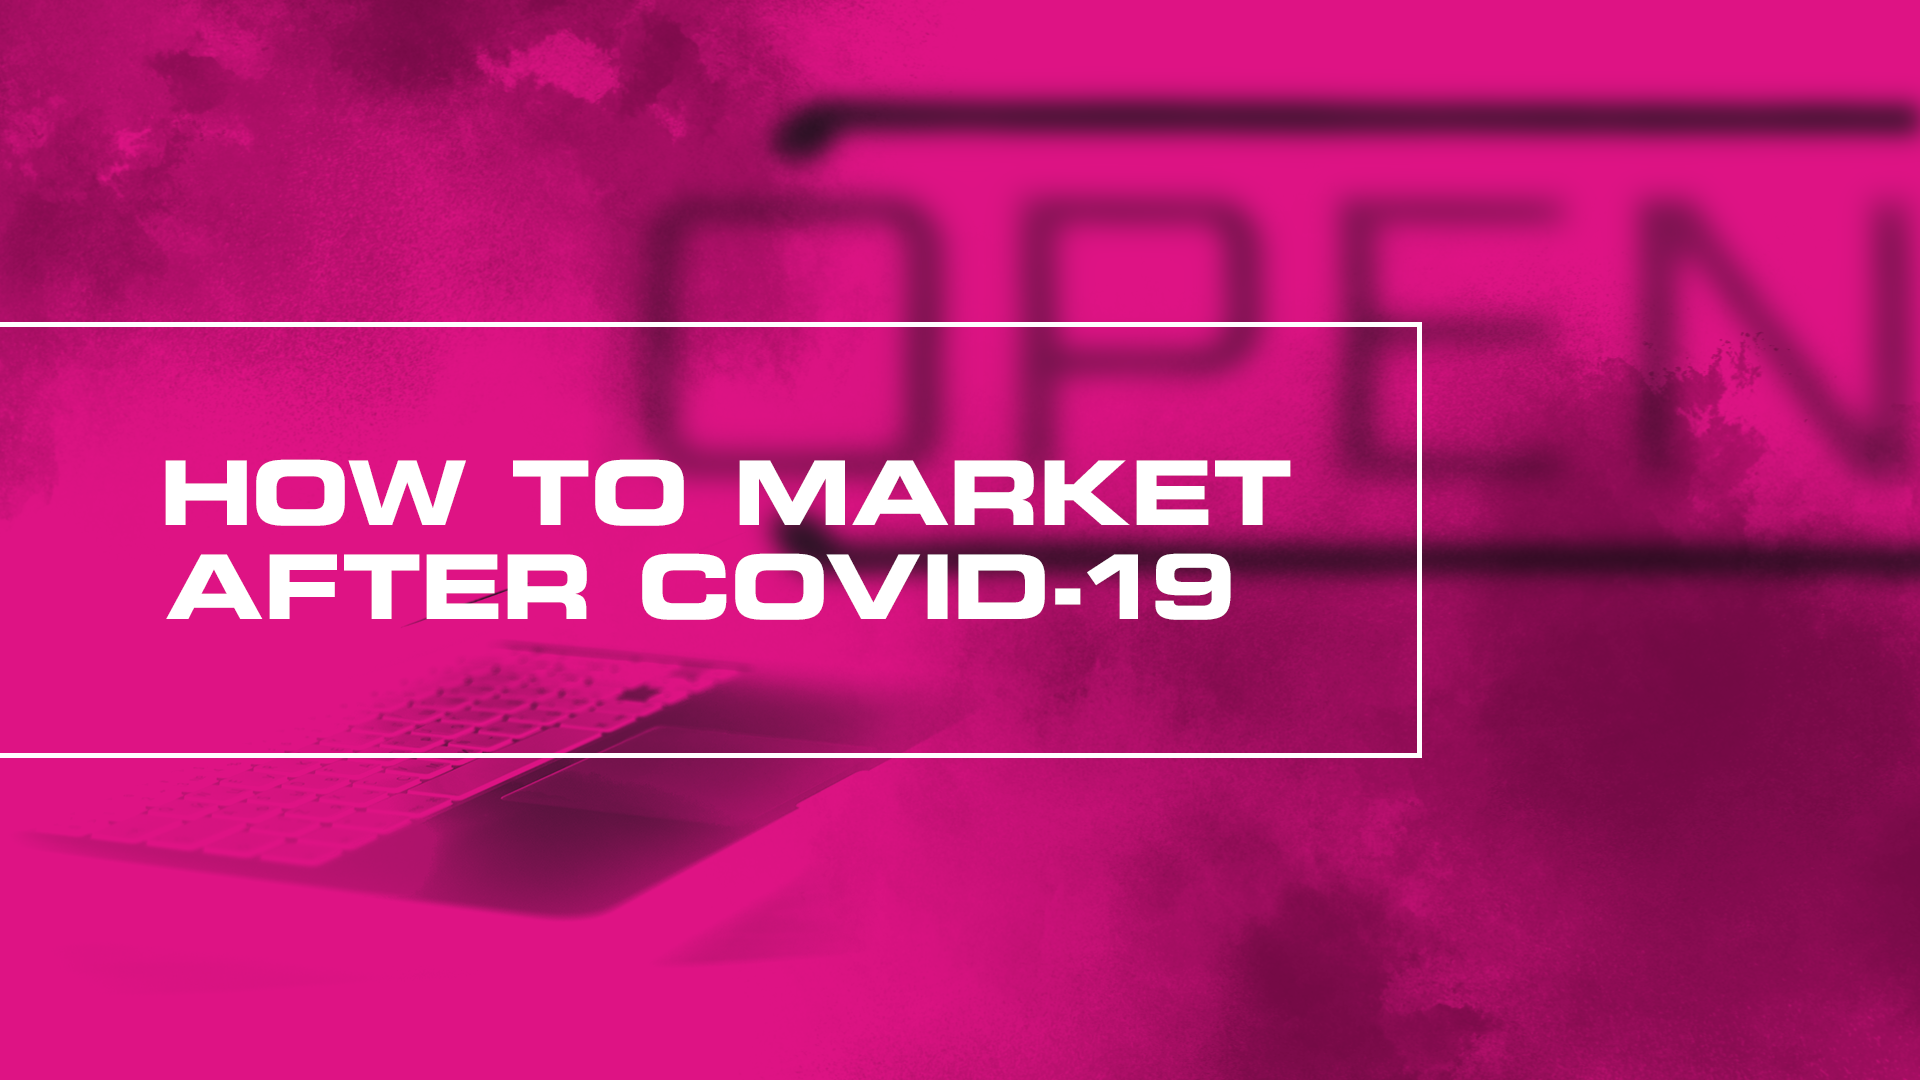 How to Market After COVID-19